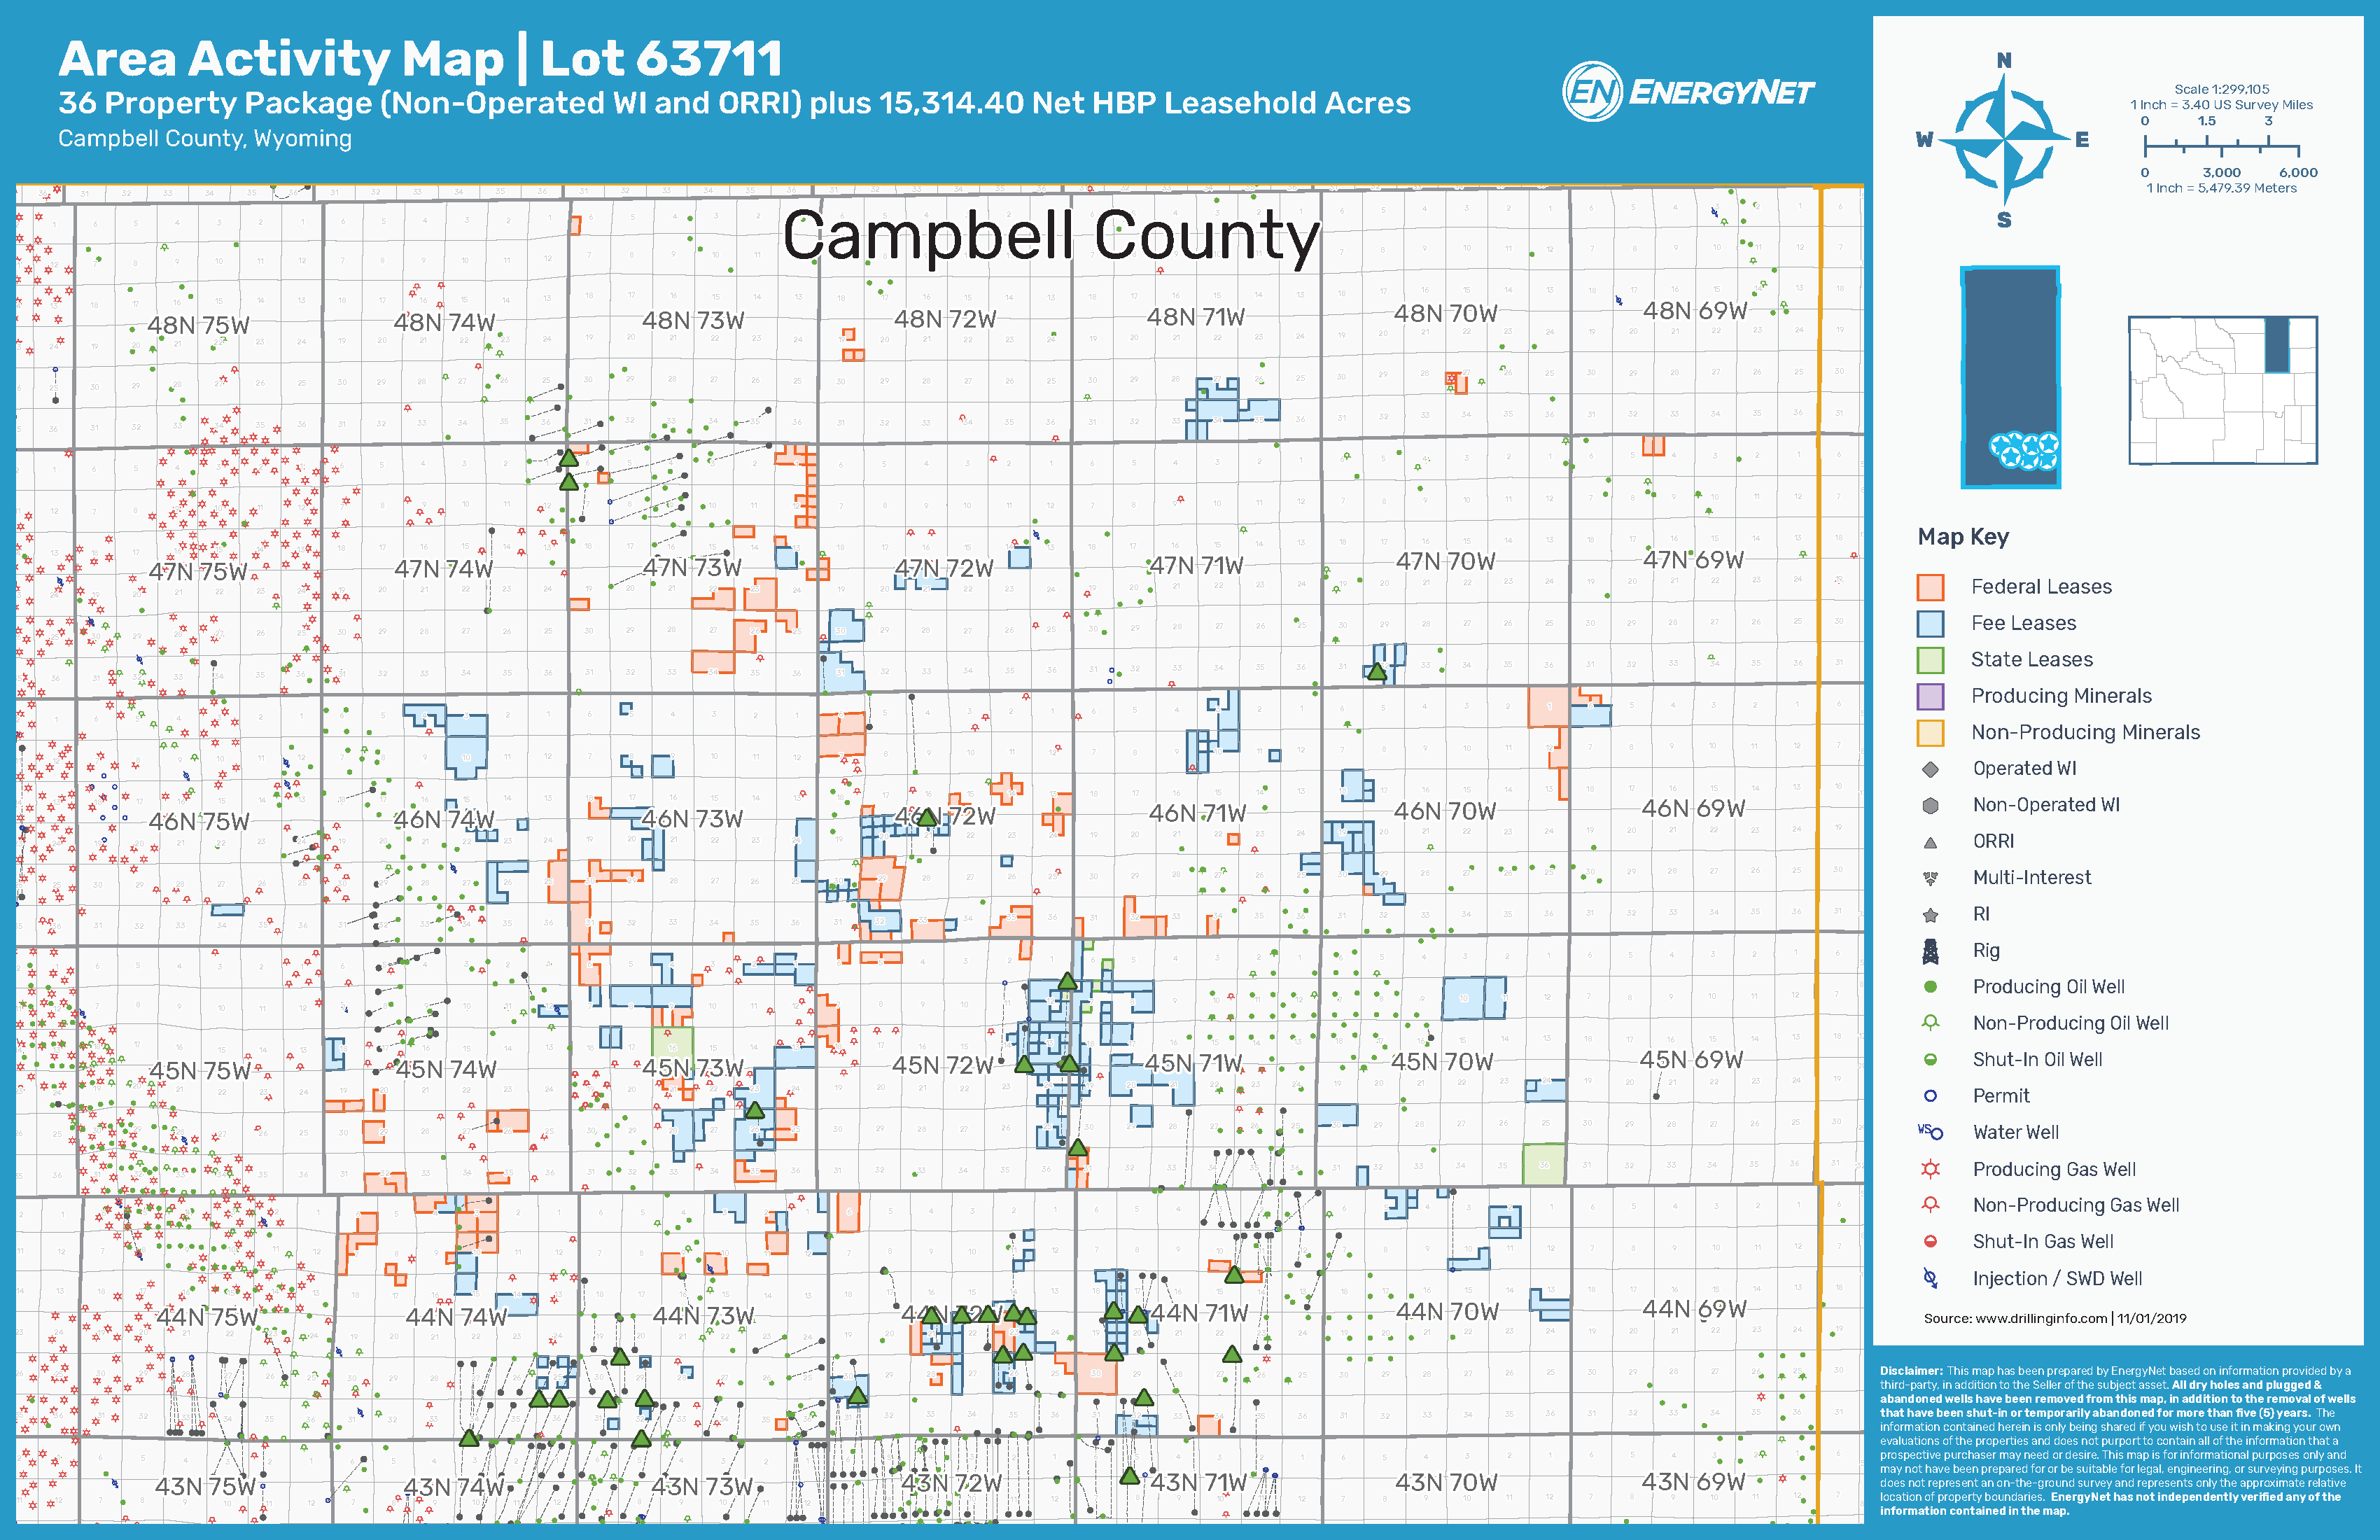 Lot 63711: Campbell County, Wyoming Opportunity Asset Map (Source: EnergyNet)